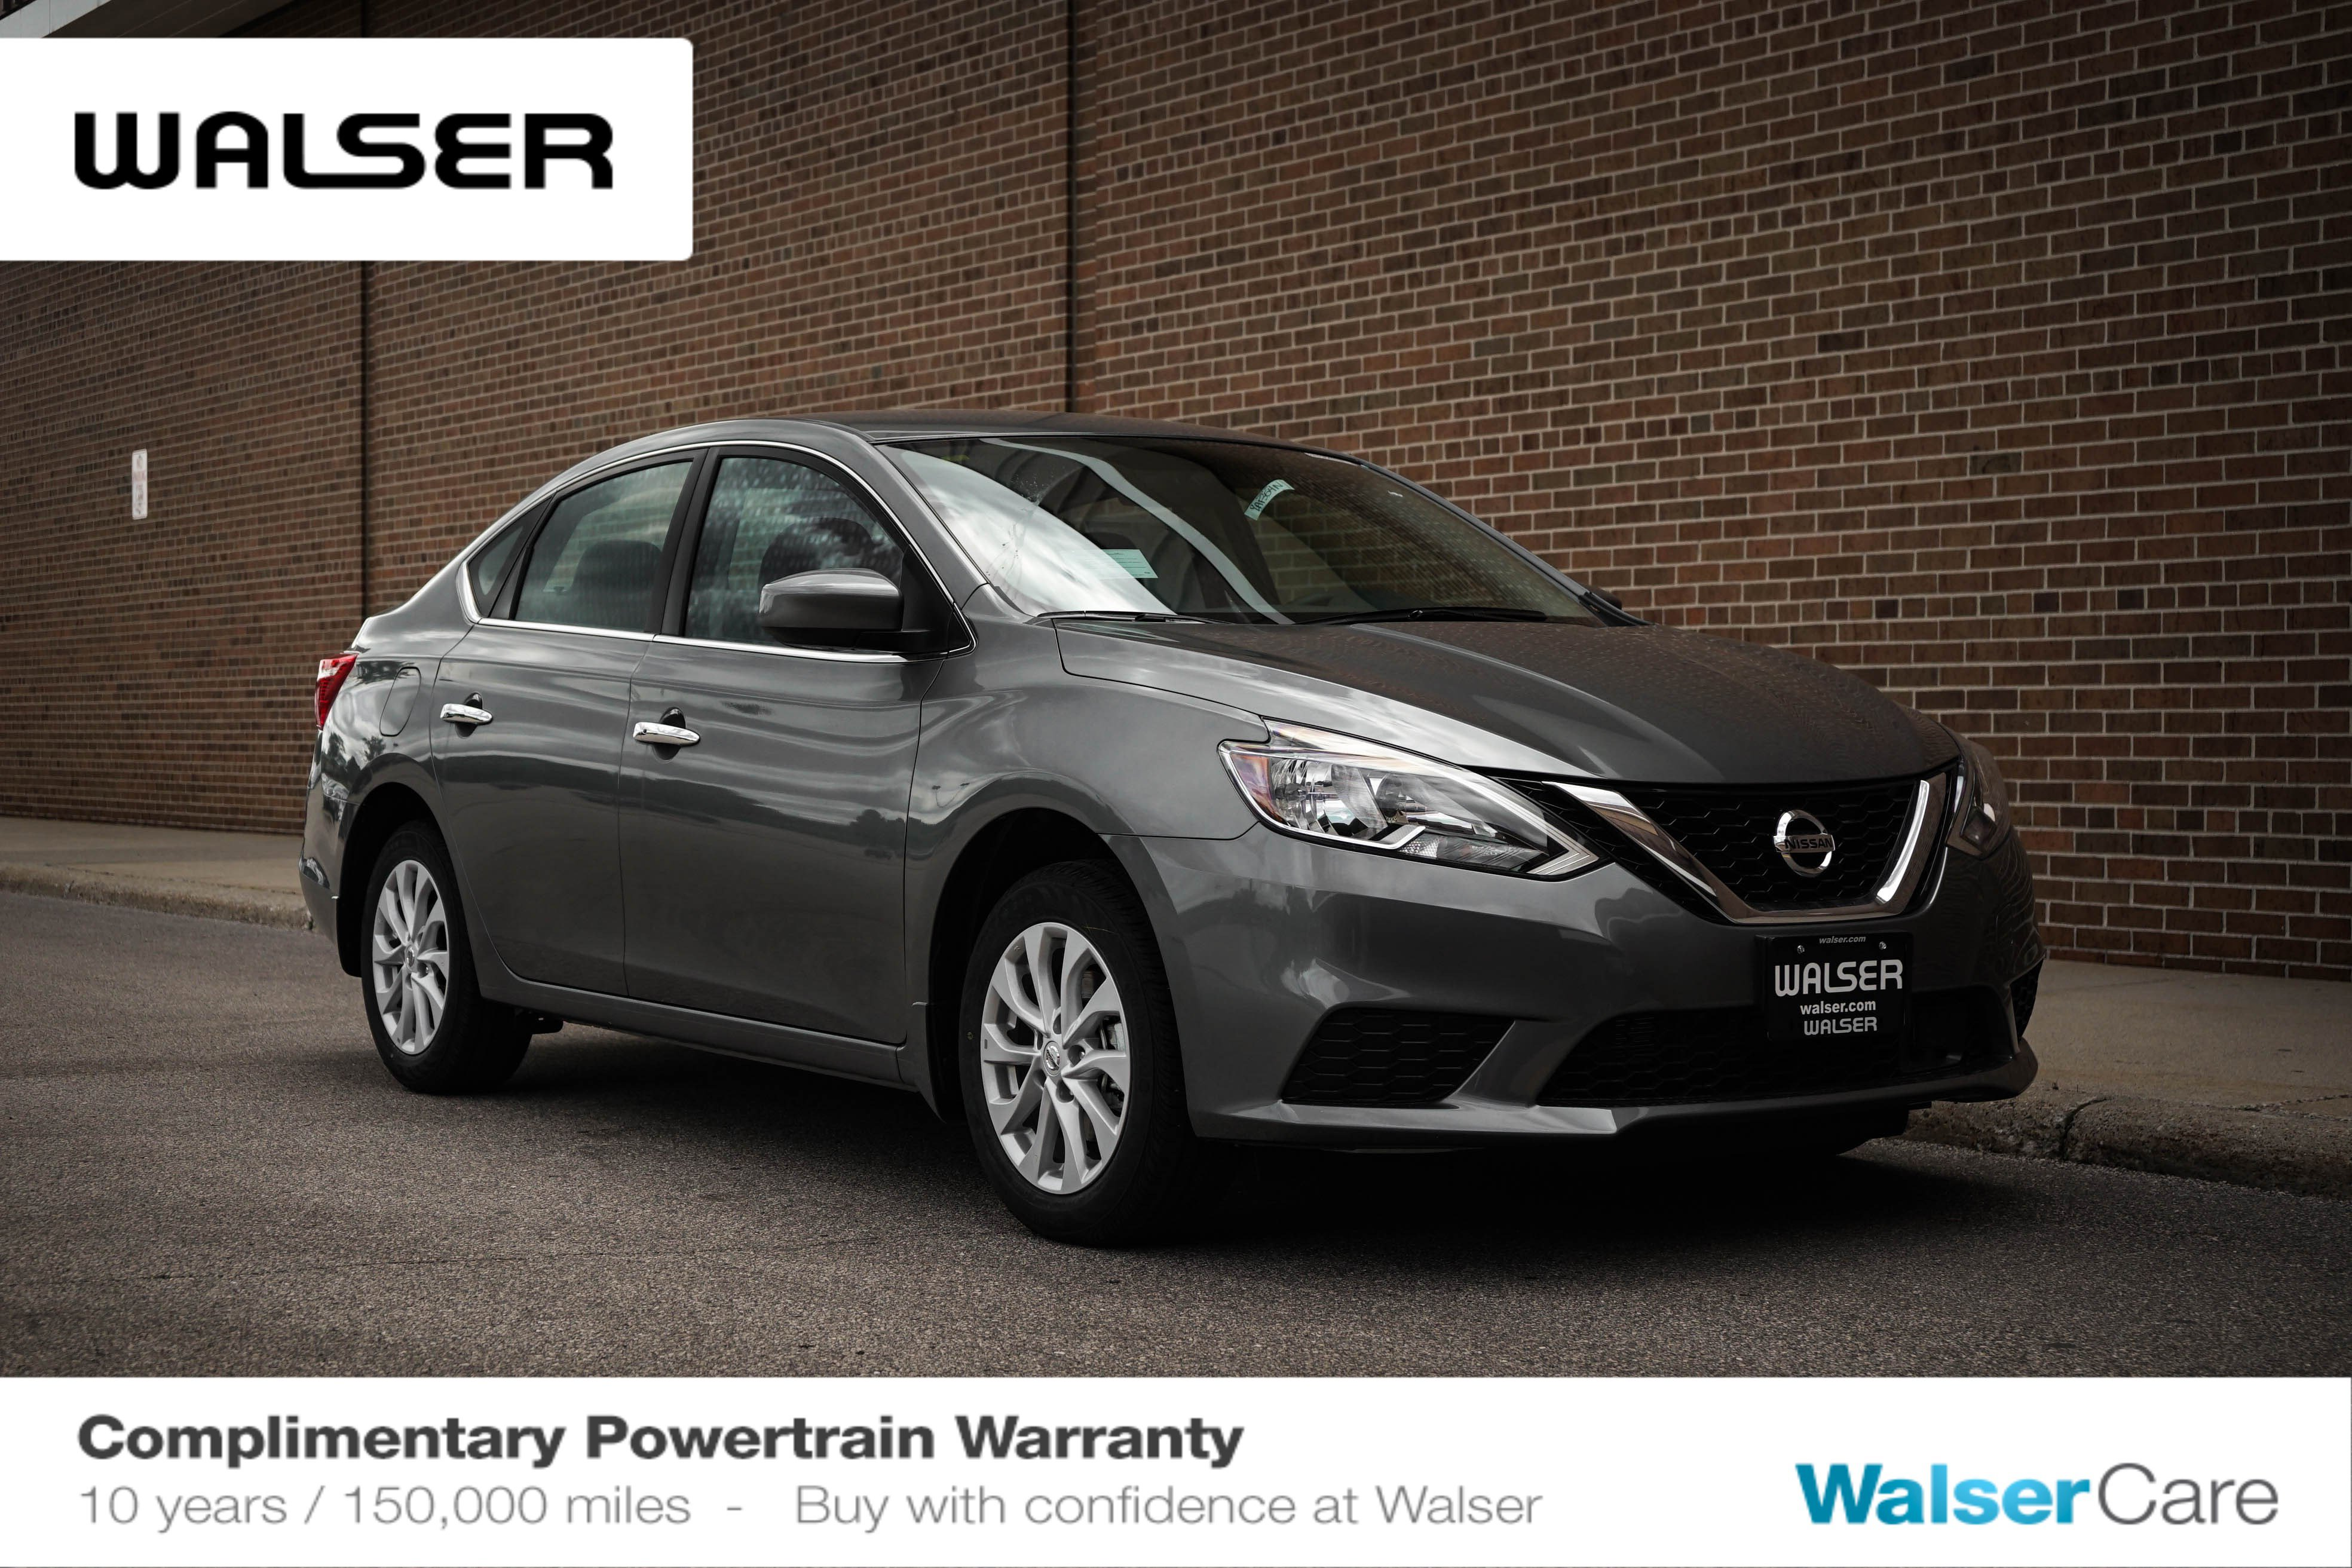 2019 Nissan Sentra SV CVT Lease Deals